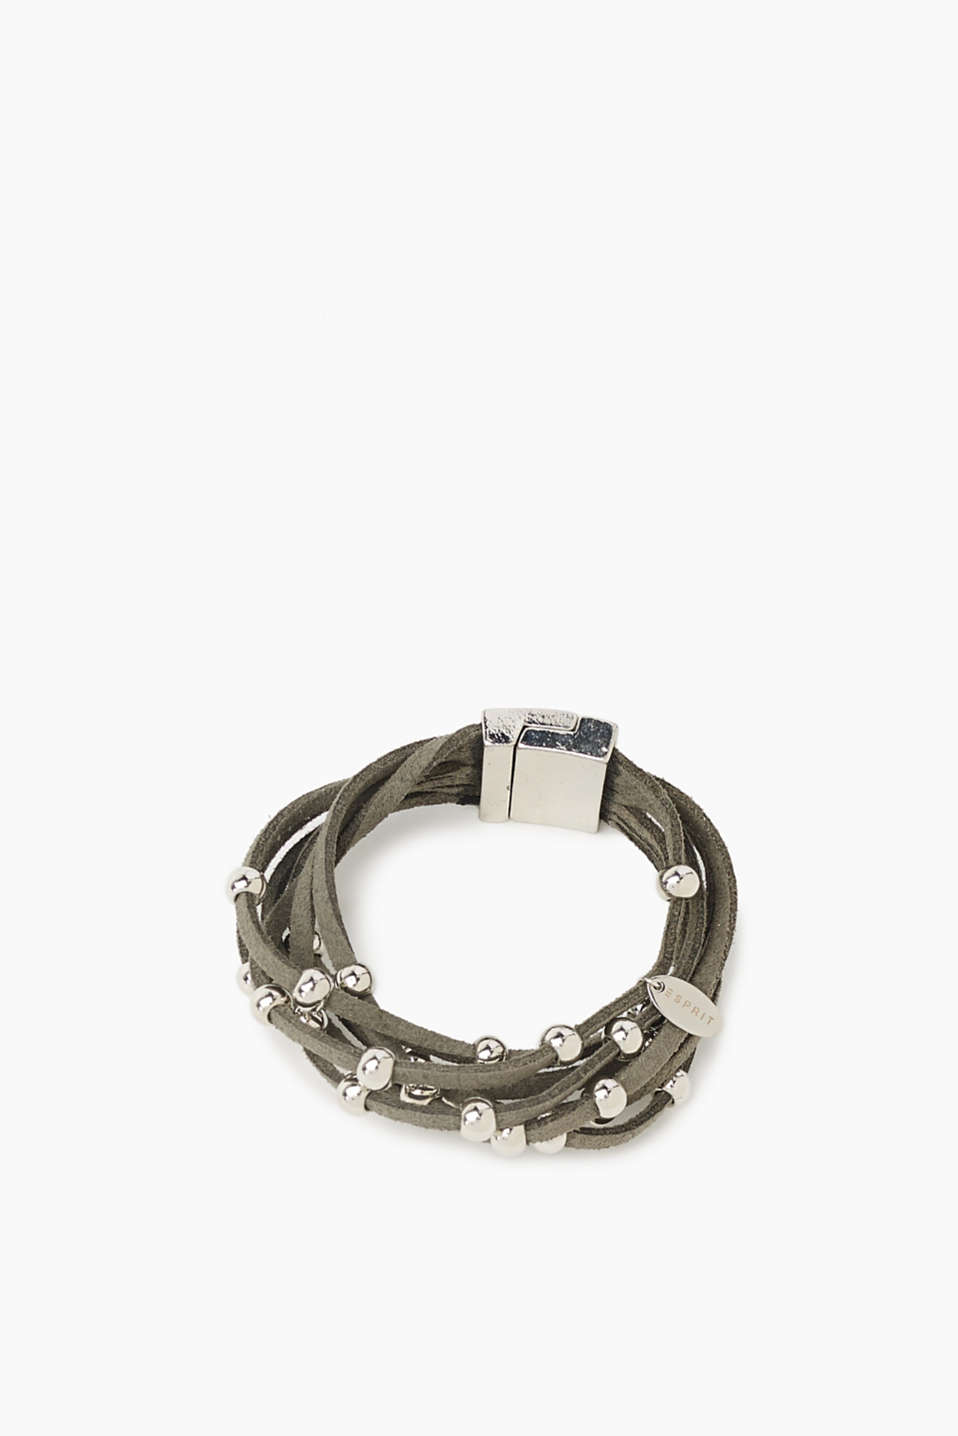 With its shiny metal beads combined with dainty ties made of faux suede, this bracelet is a beautiful piece of jewellery!